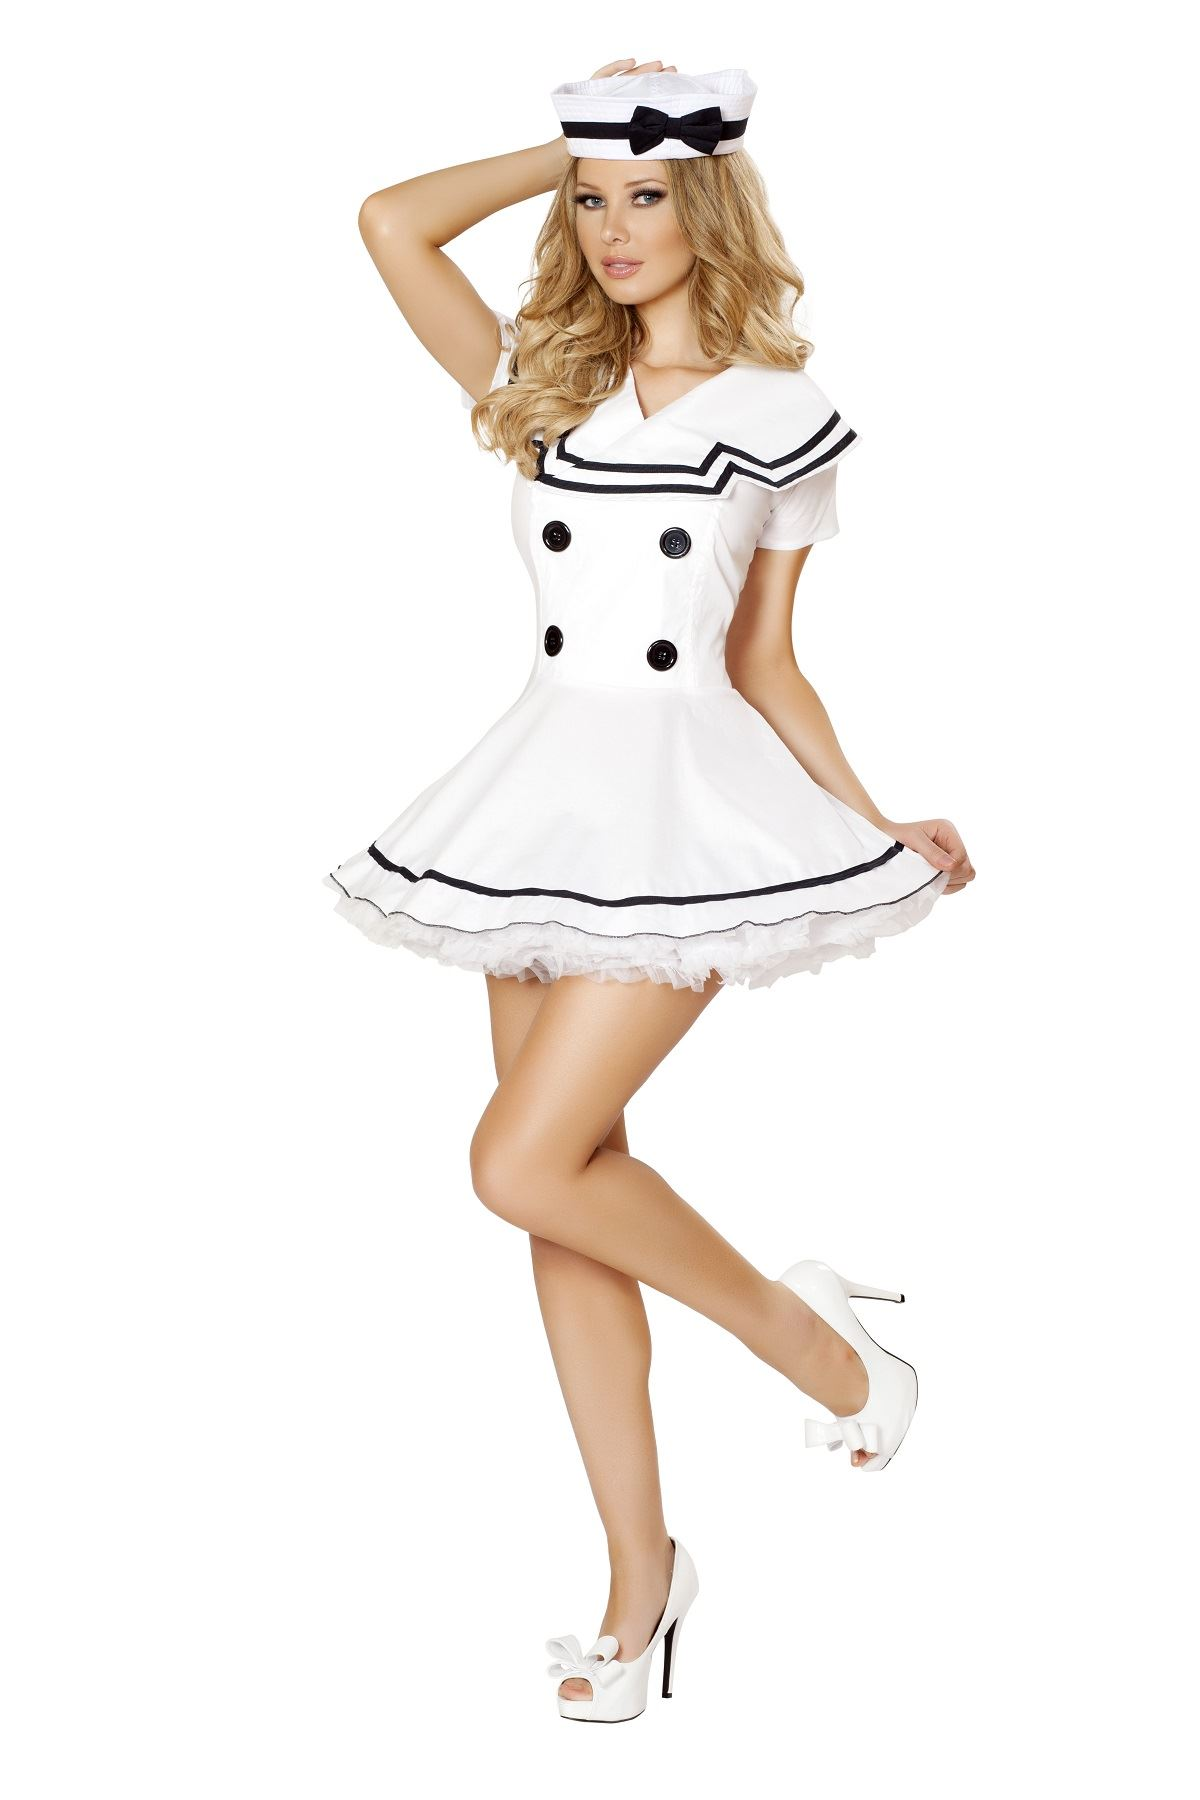 Adult Sailor Maiden Women Costume ...  sc 1 st  The Costume Land & Adult Sailor Maiden Women Costume | $67.99 | The Costume Land